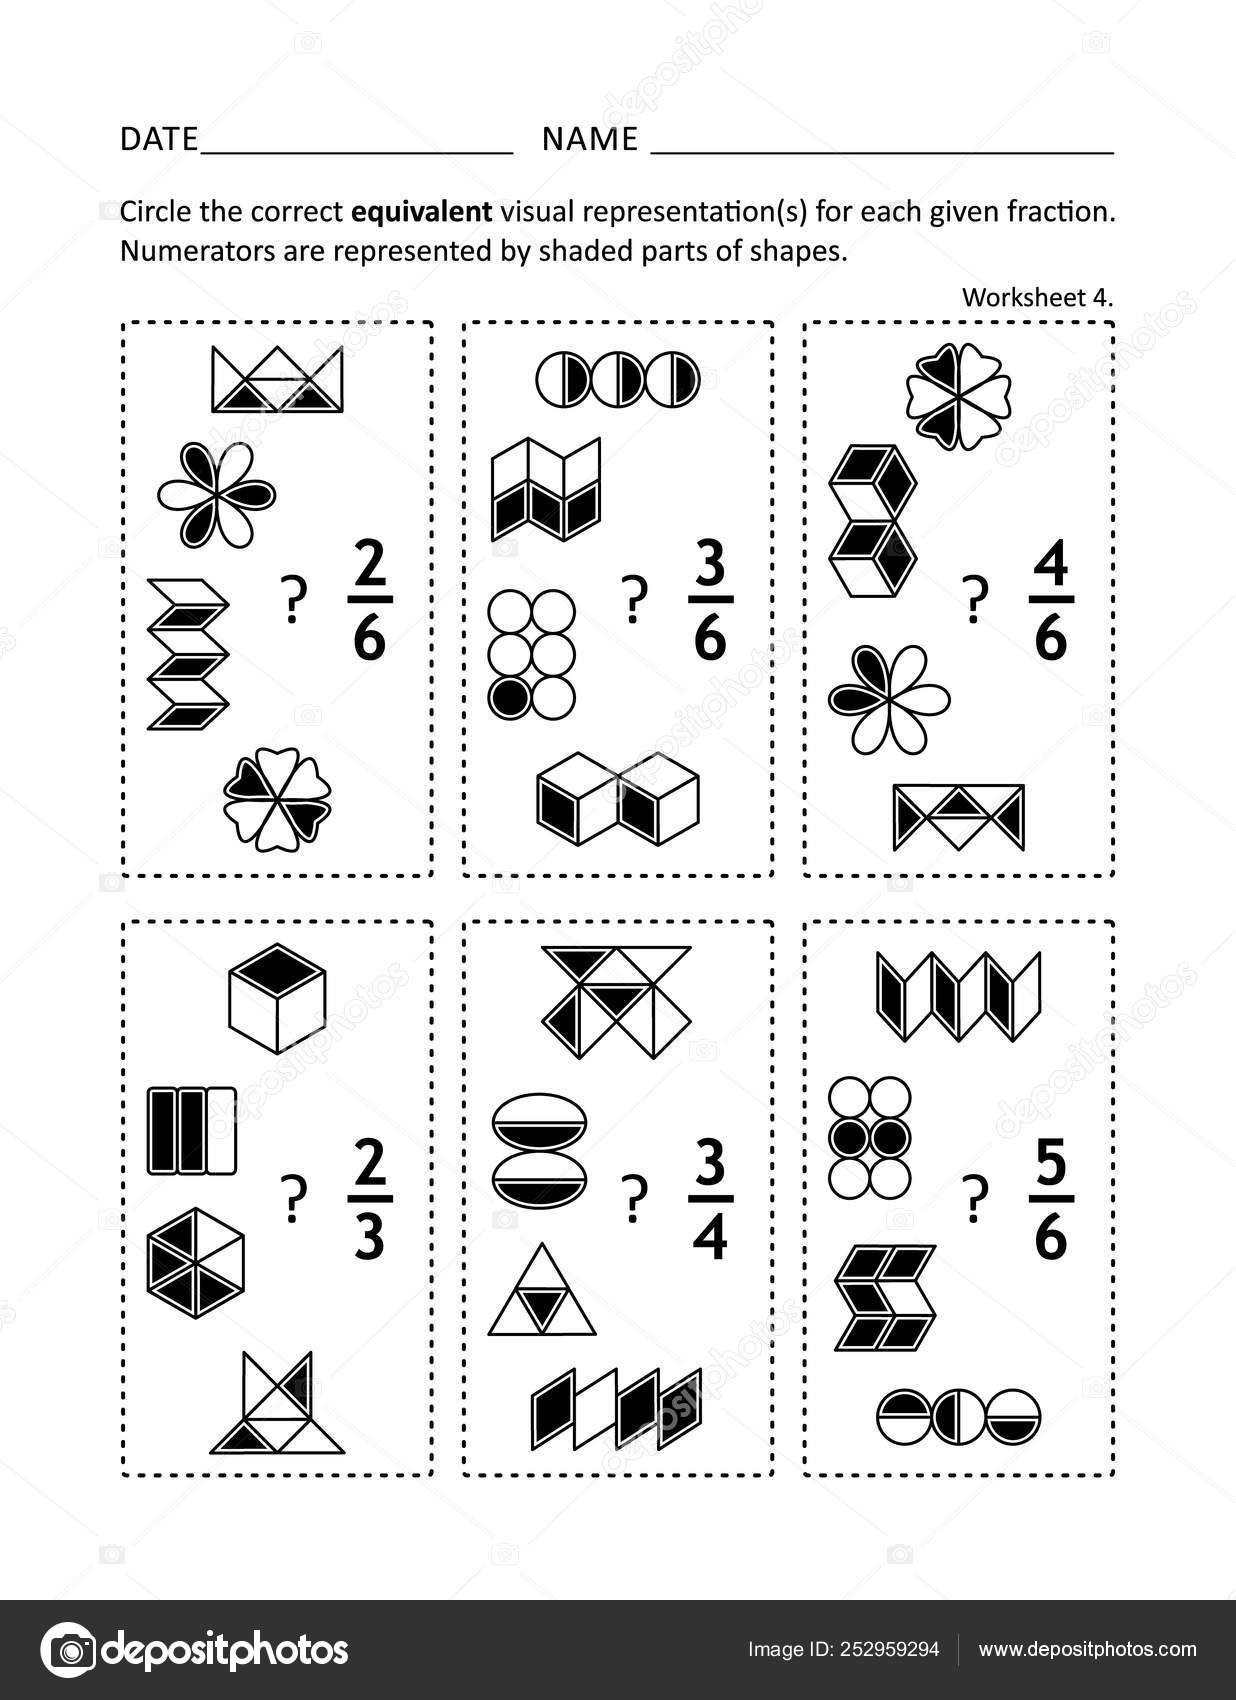 36 Equivalent Fractions Vectors Royalty Free Vector Equivalent Fractions Images Depositphotos [ 1700 x 1236 Pixel ]